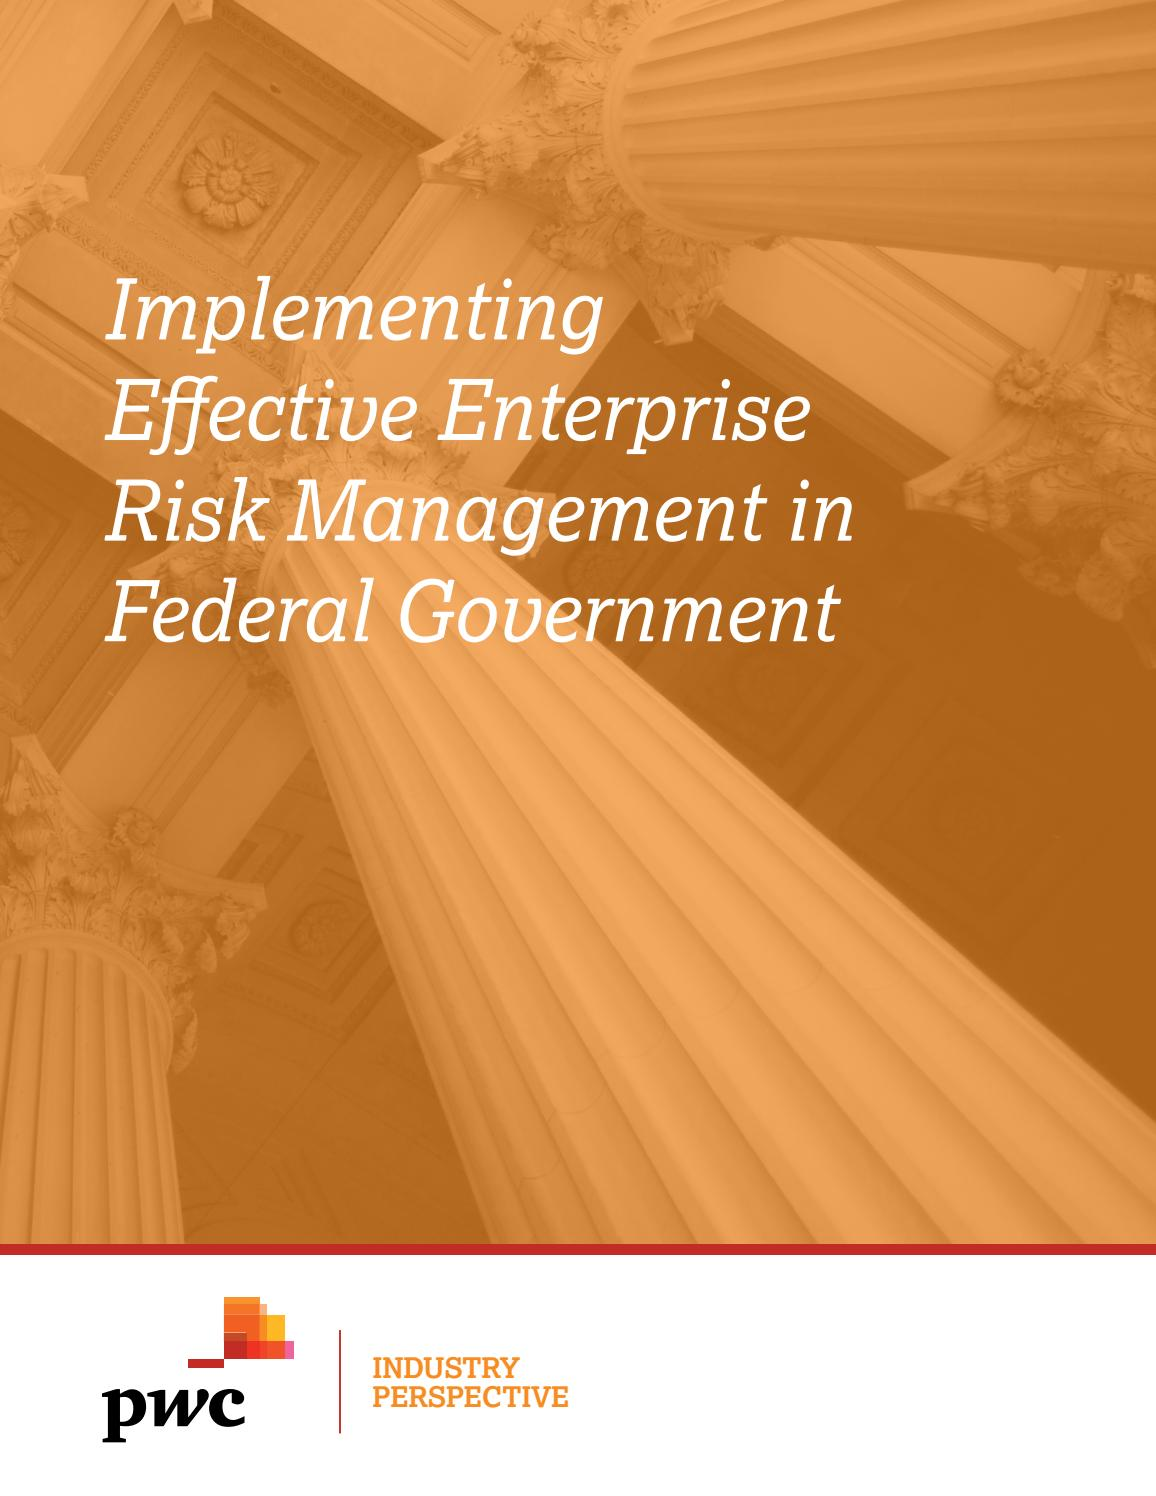 Coso 2016 enterprise risk management aligning risk with strategy - Implementing Effective Enterprise Risk Management In Federal Government By Govloop Issuu